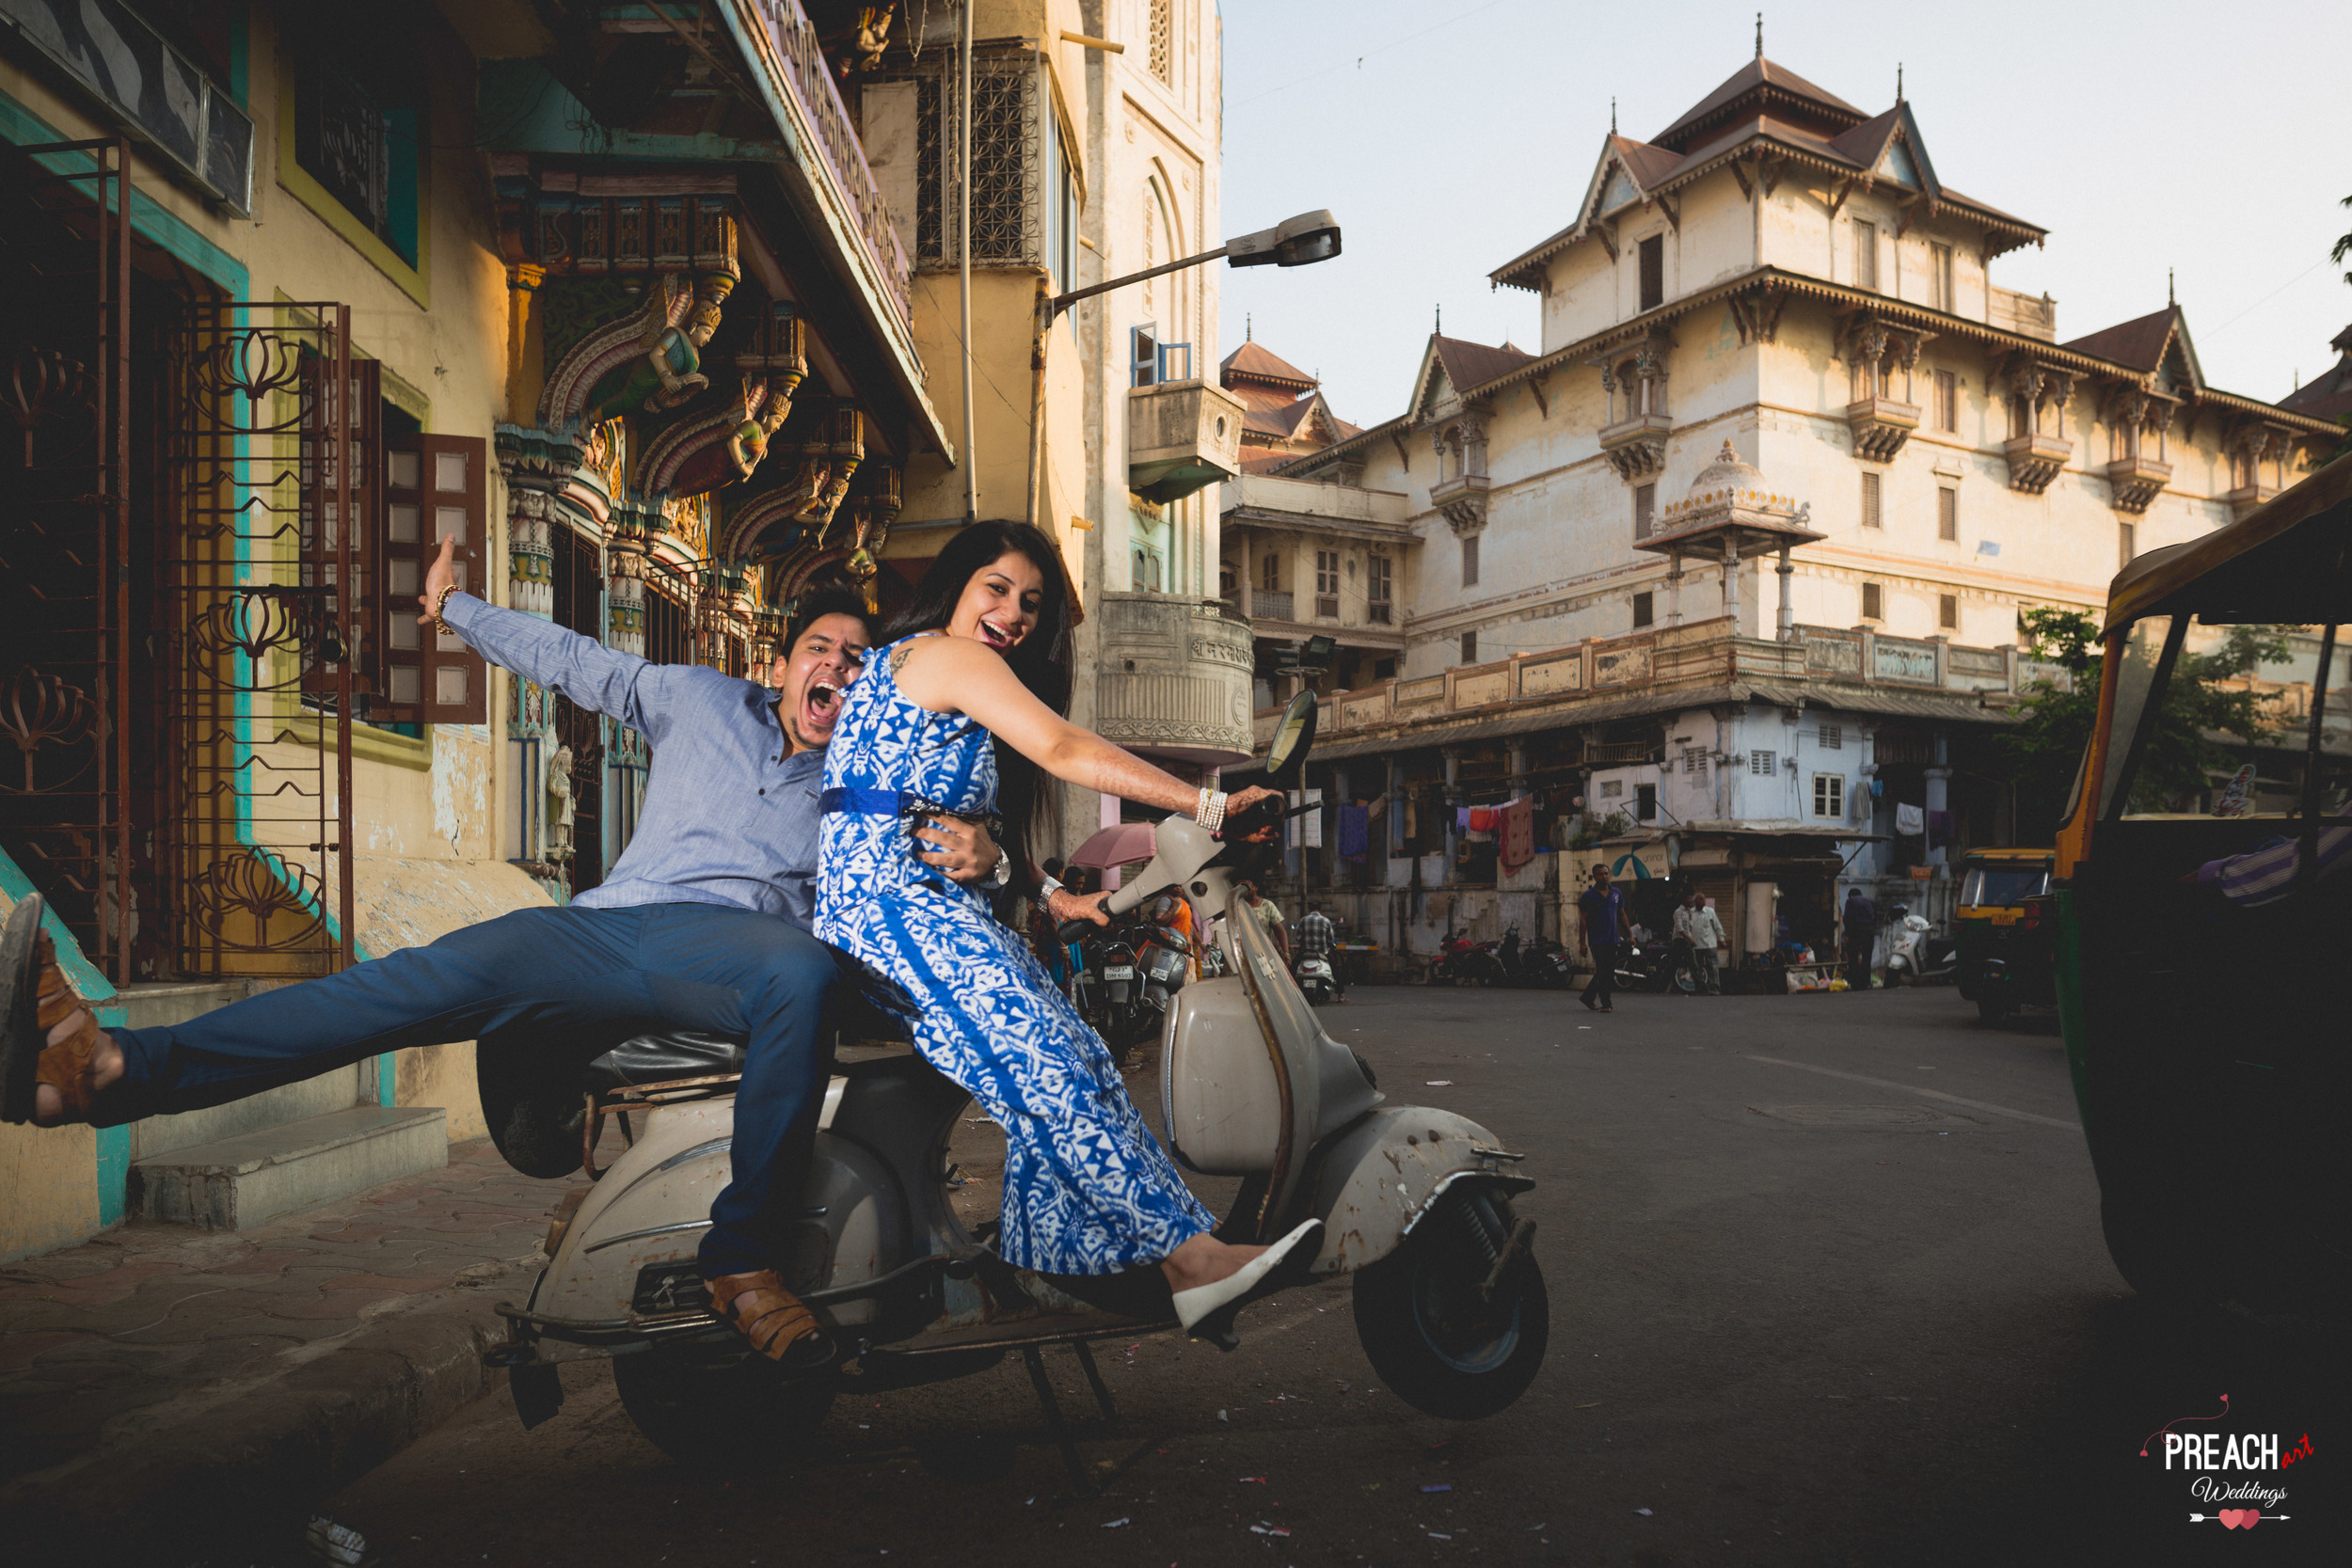 V&M_PRE-WEDDING SHOOT_AHMEDABAD OLD CITY_PREACH ART-2.jpg